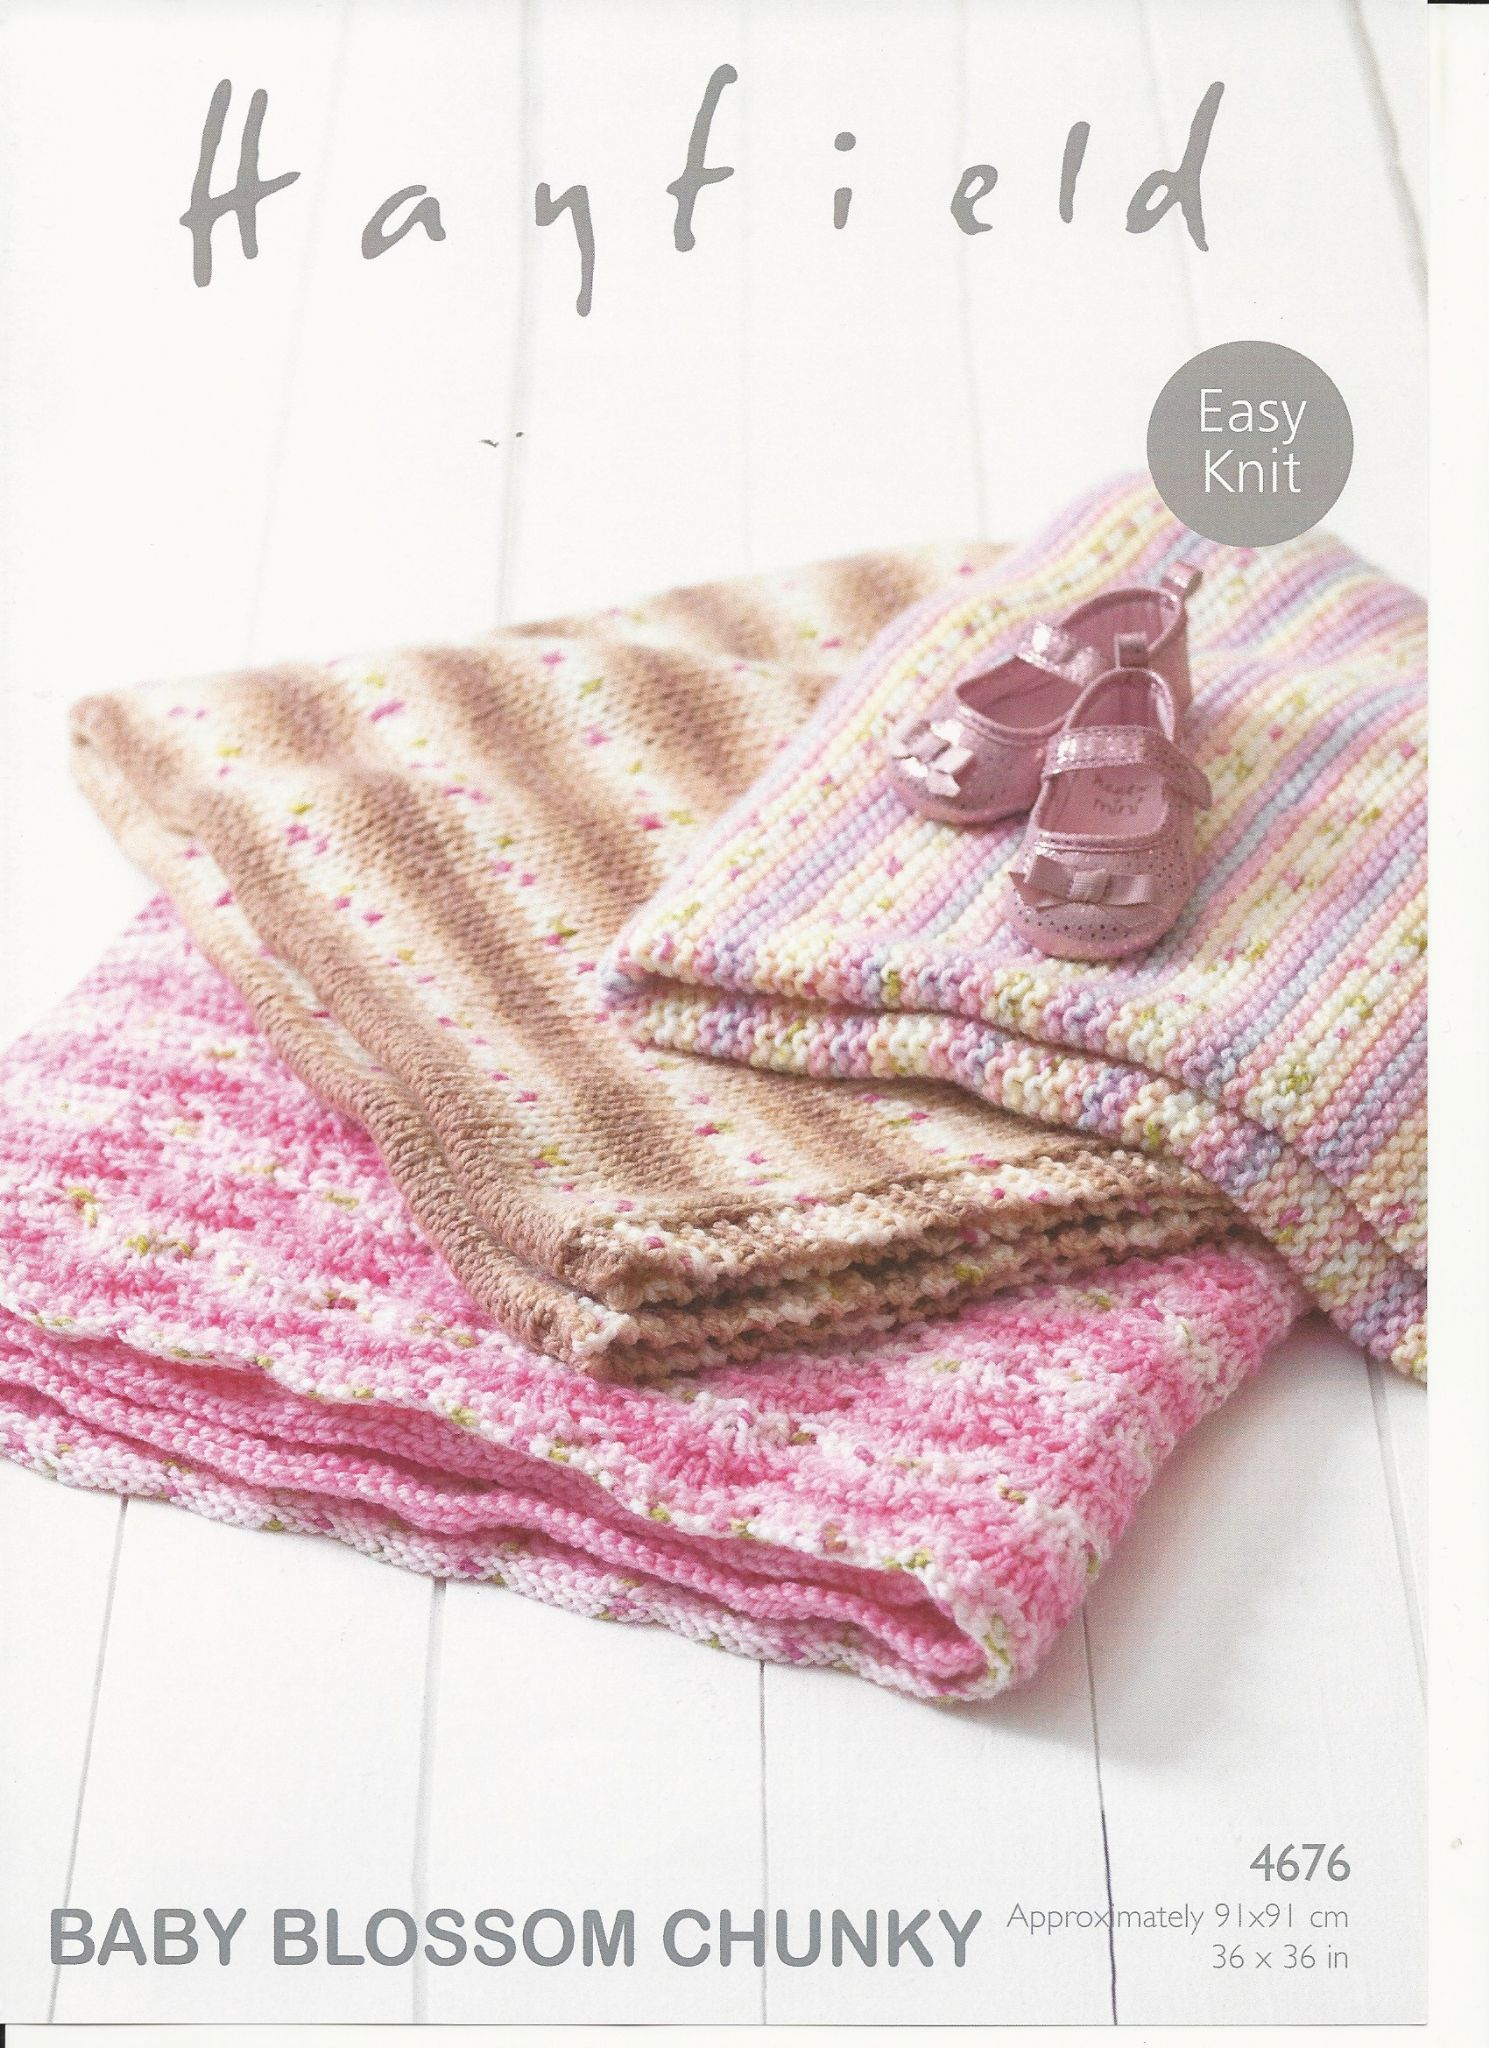 Hayfield Babies Blankets Knitting Pattern in Baby Blossom Chunky 4676